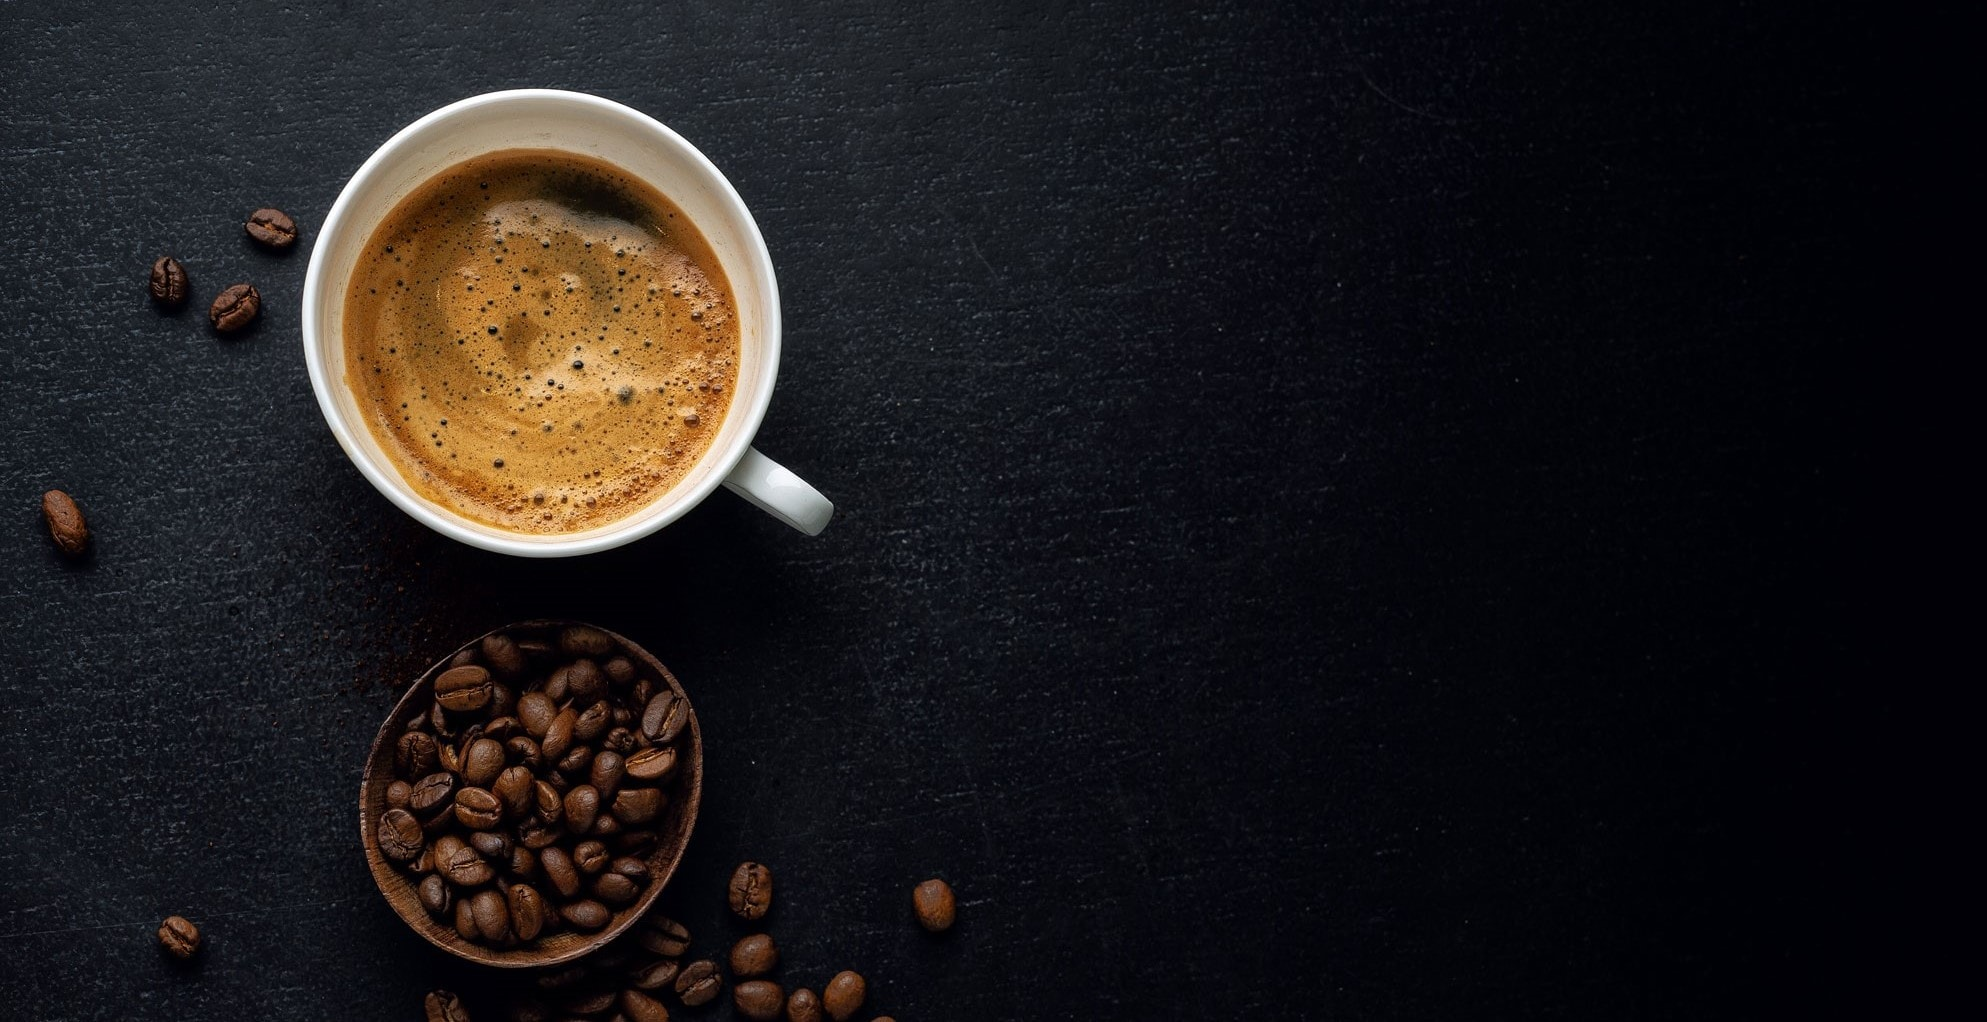 coffee-background-with-coffee-beans-CGDTGHD